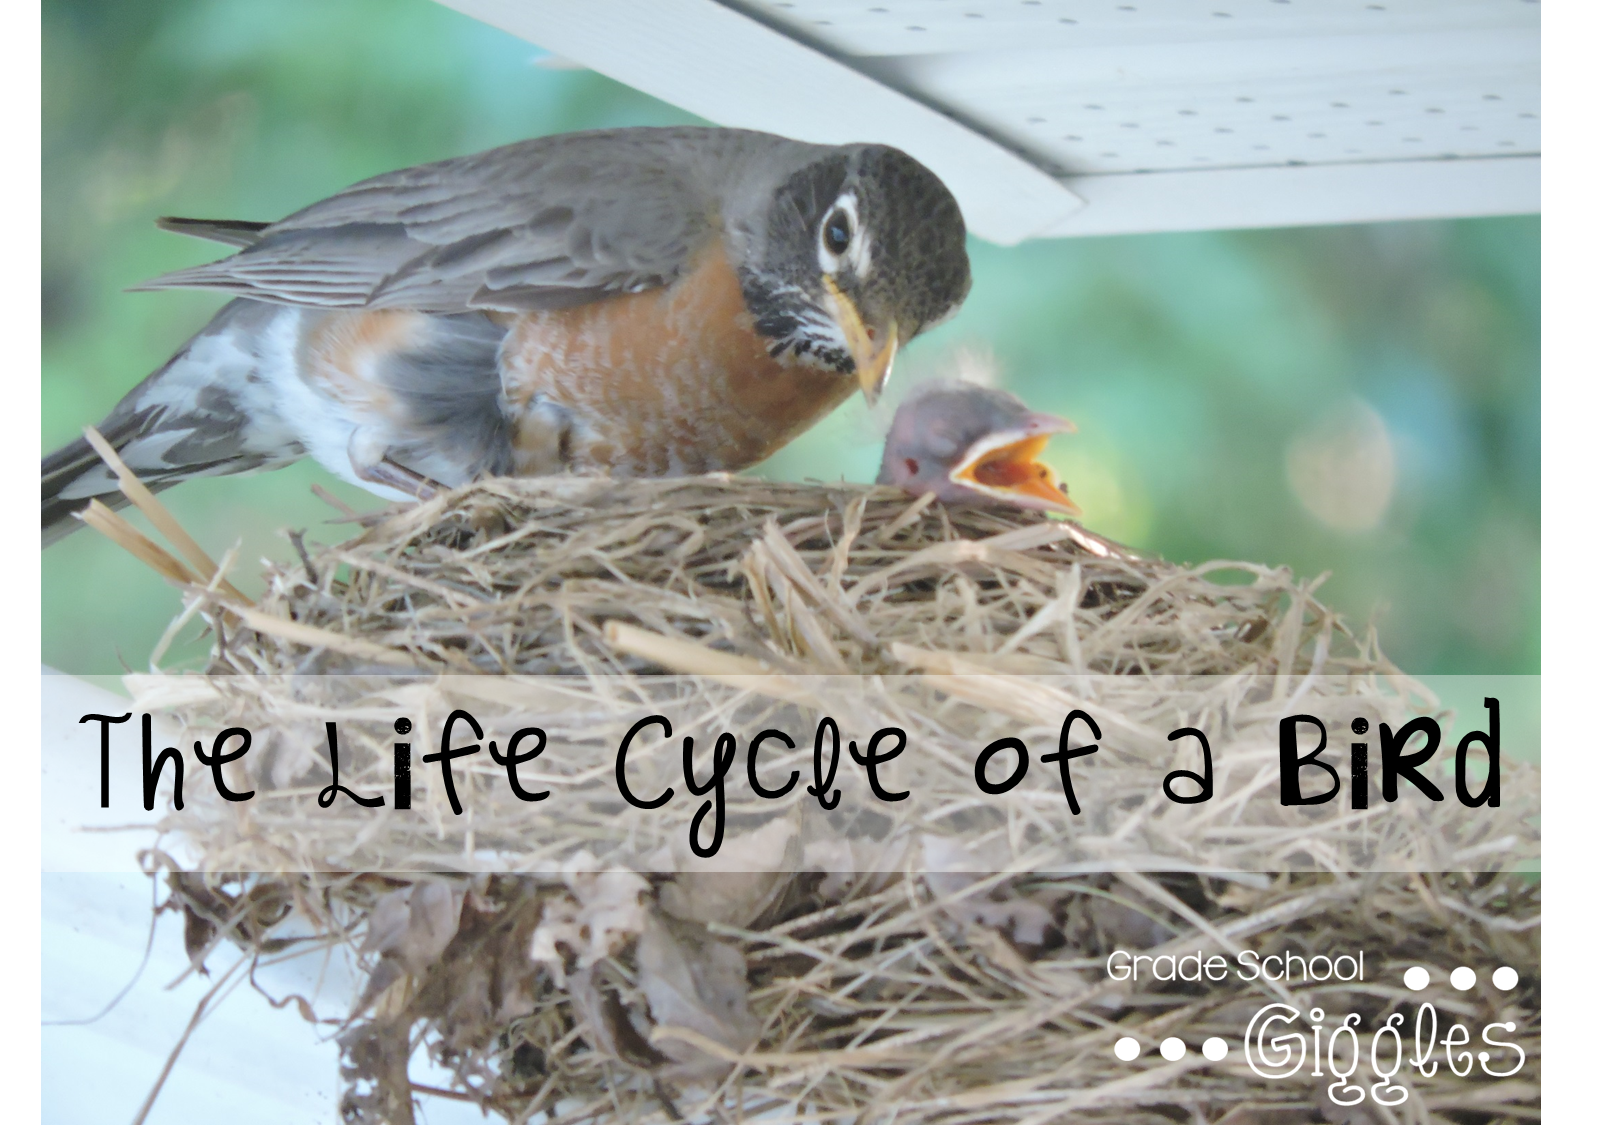 a day in the life of a bird The bird life cycle is a simple circle that moves from egg to hatchling to vulnerable nestling to fledgling learning to fly and finally to mature bird ready to mate.